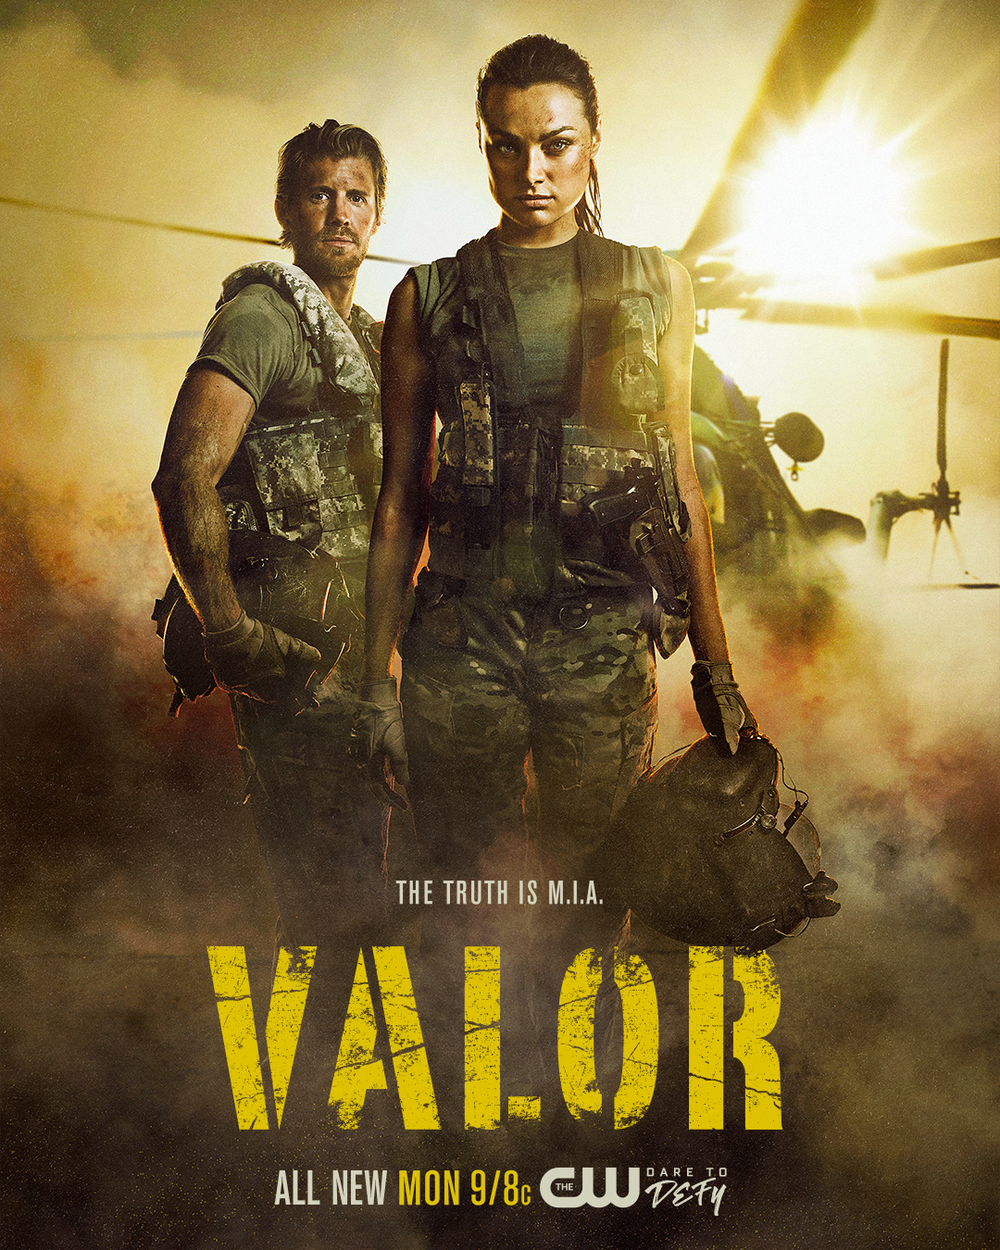 VALOR - stream it on Netflix